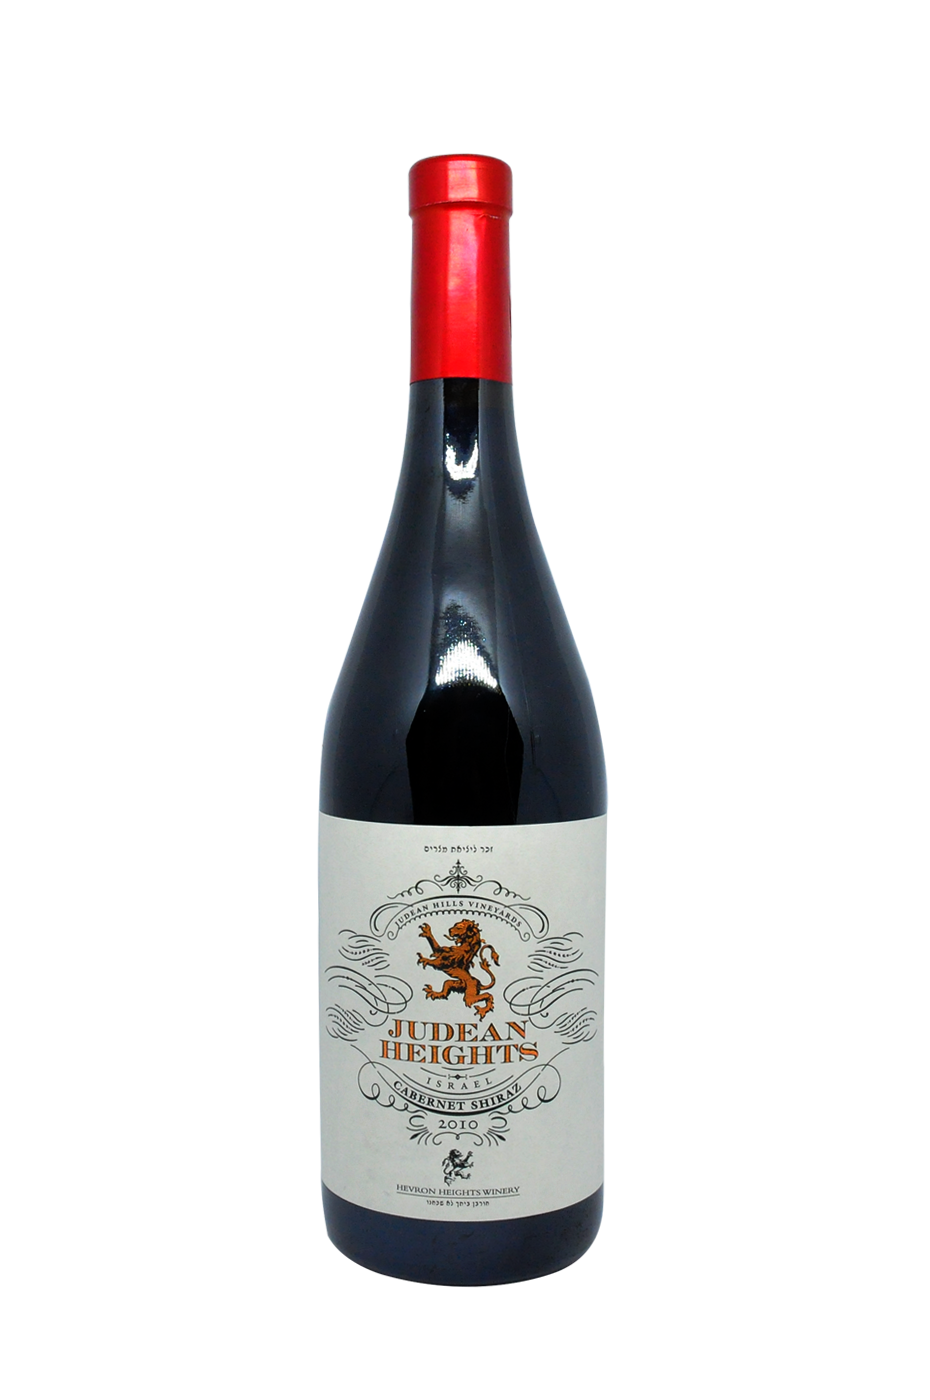 Judean Heights Cabernet Shiraz